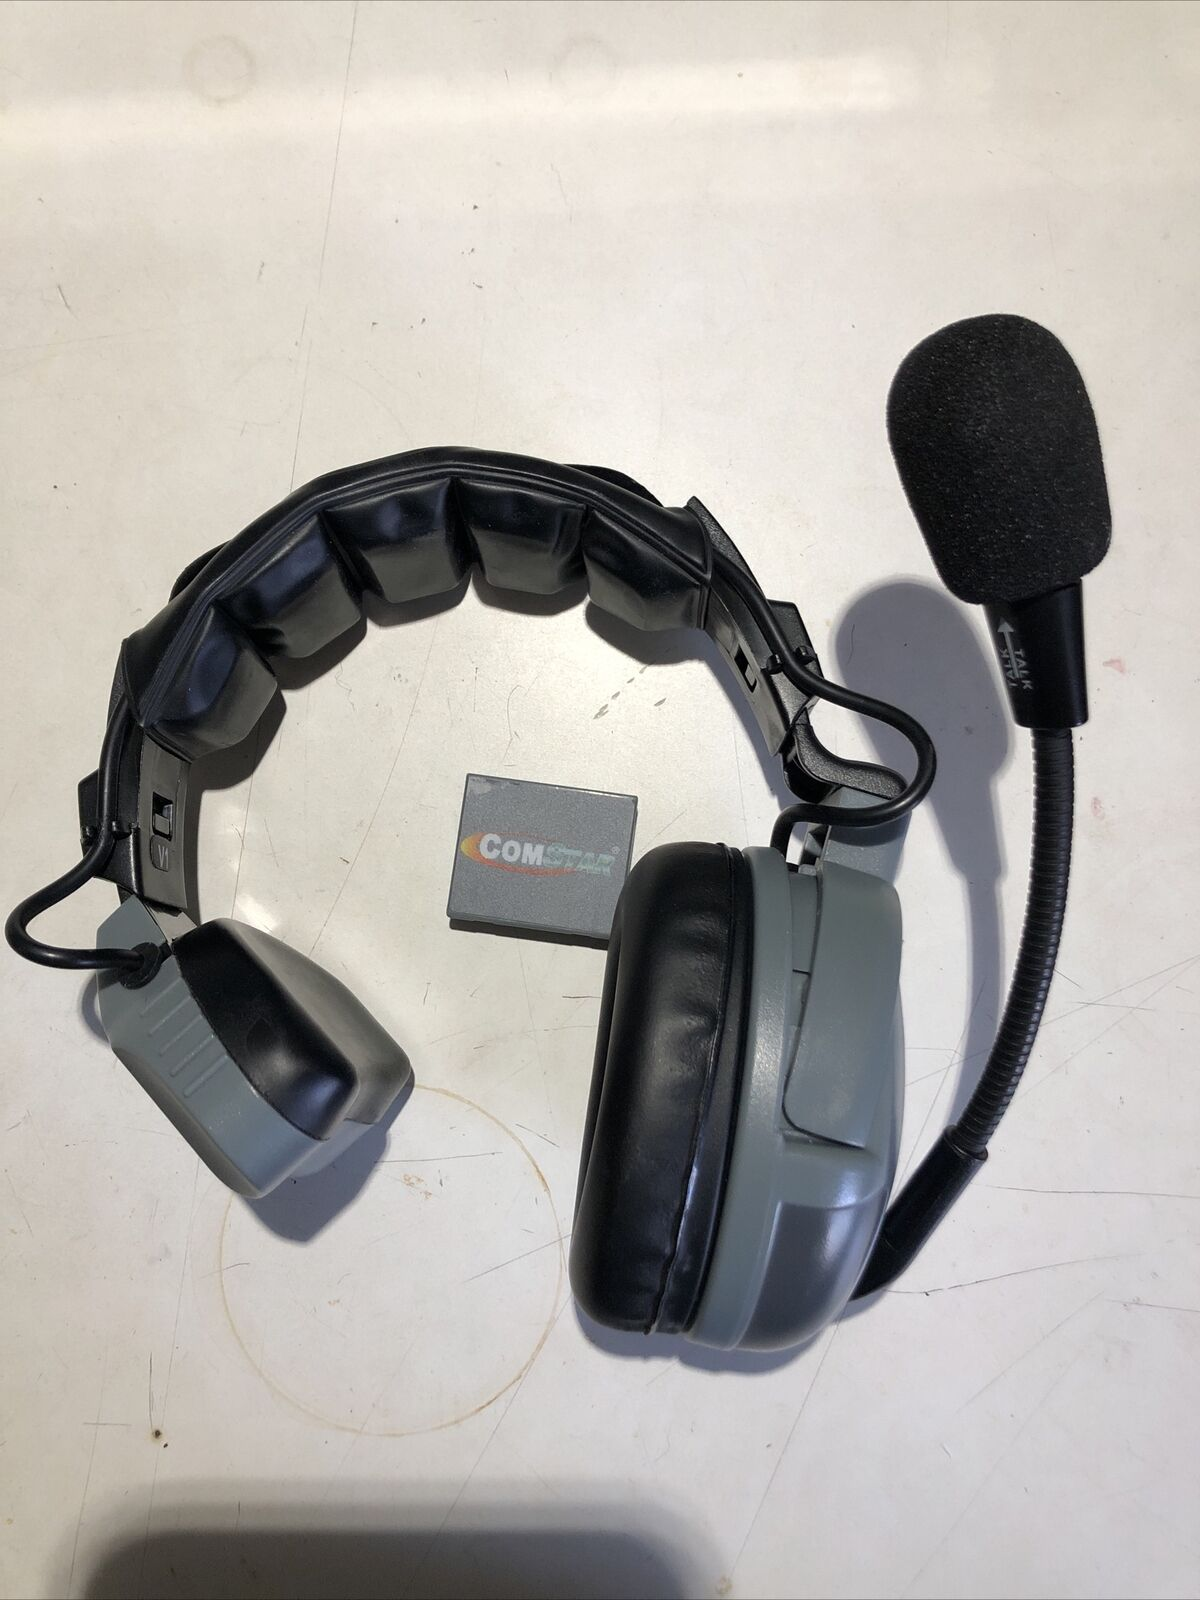 EarTec ComStar Headset. Buy it now for 250.00